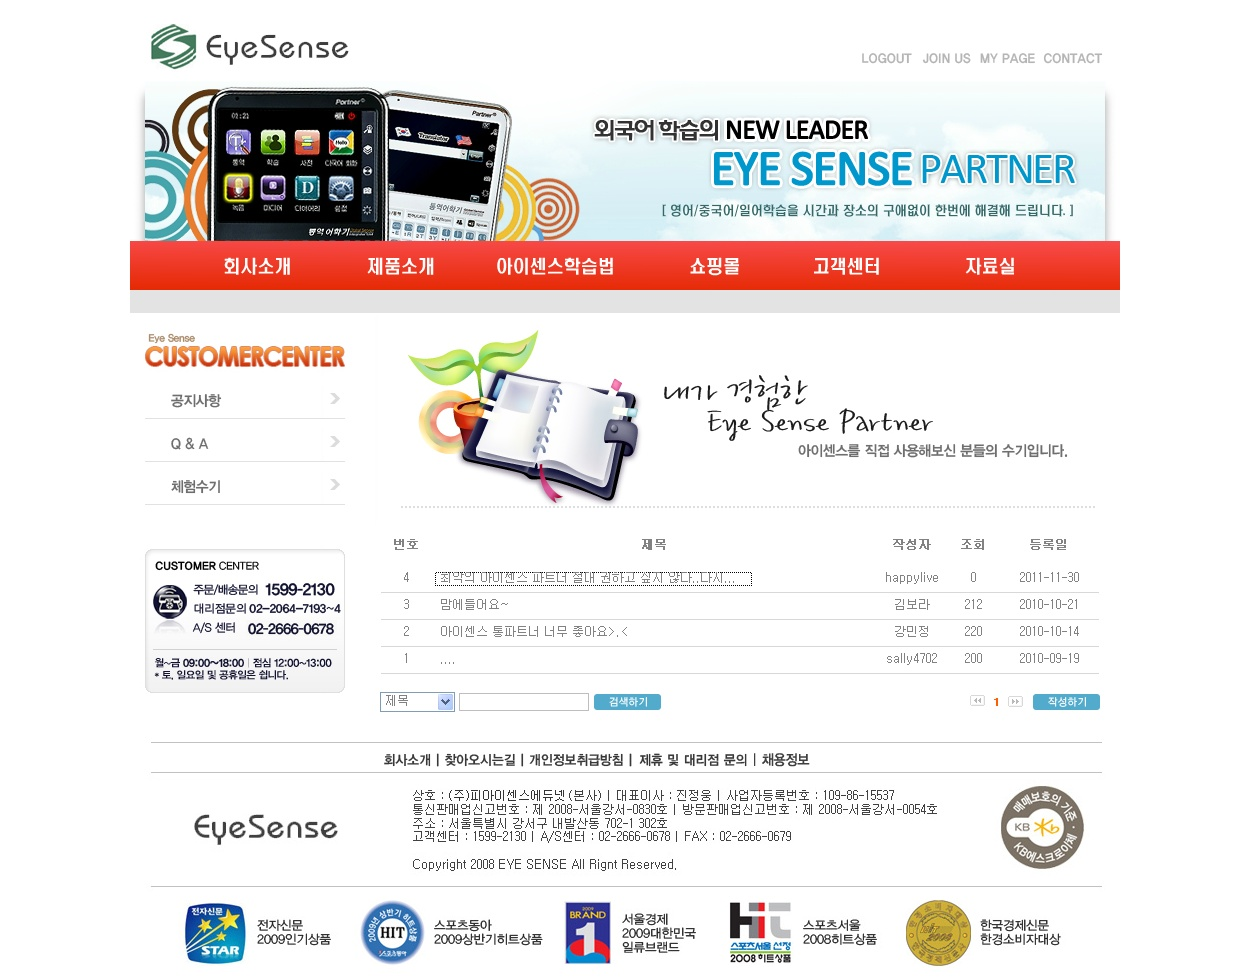 eyesensepartner_kr_20111130_103637.jpg